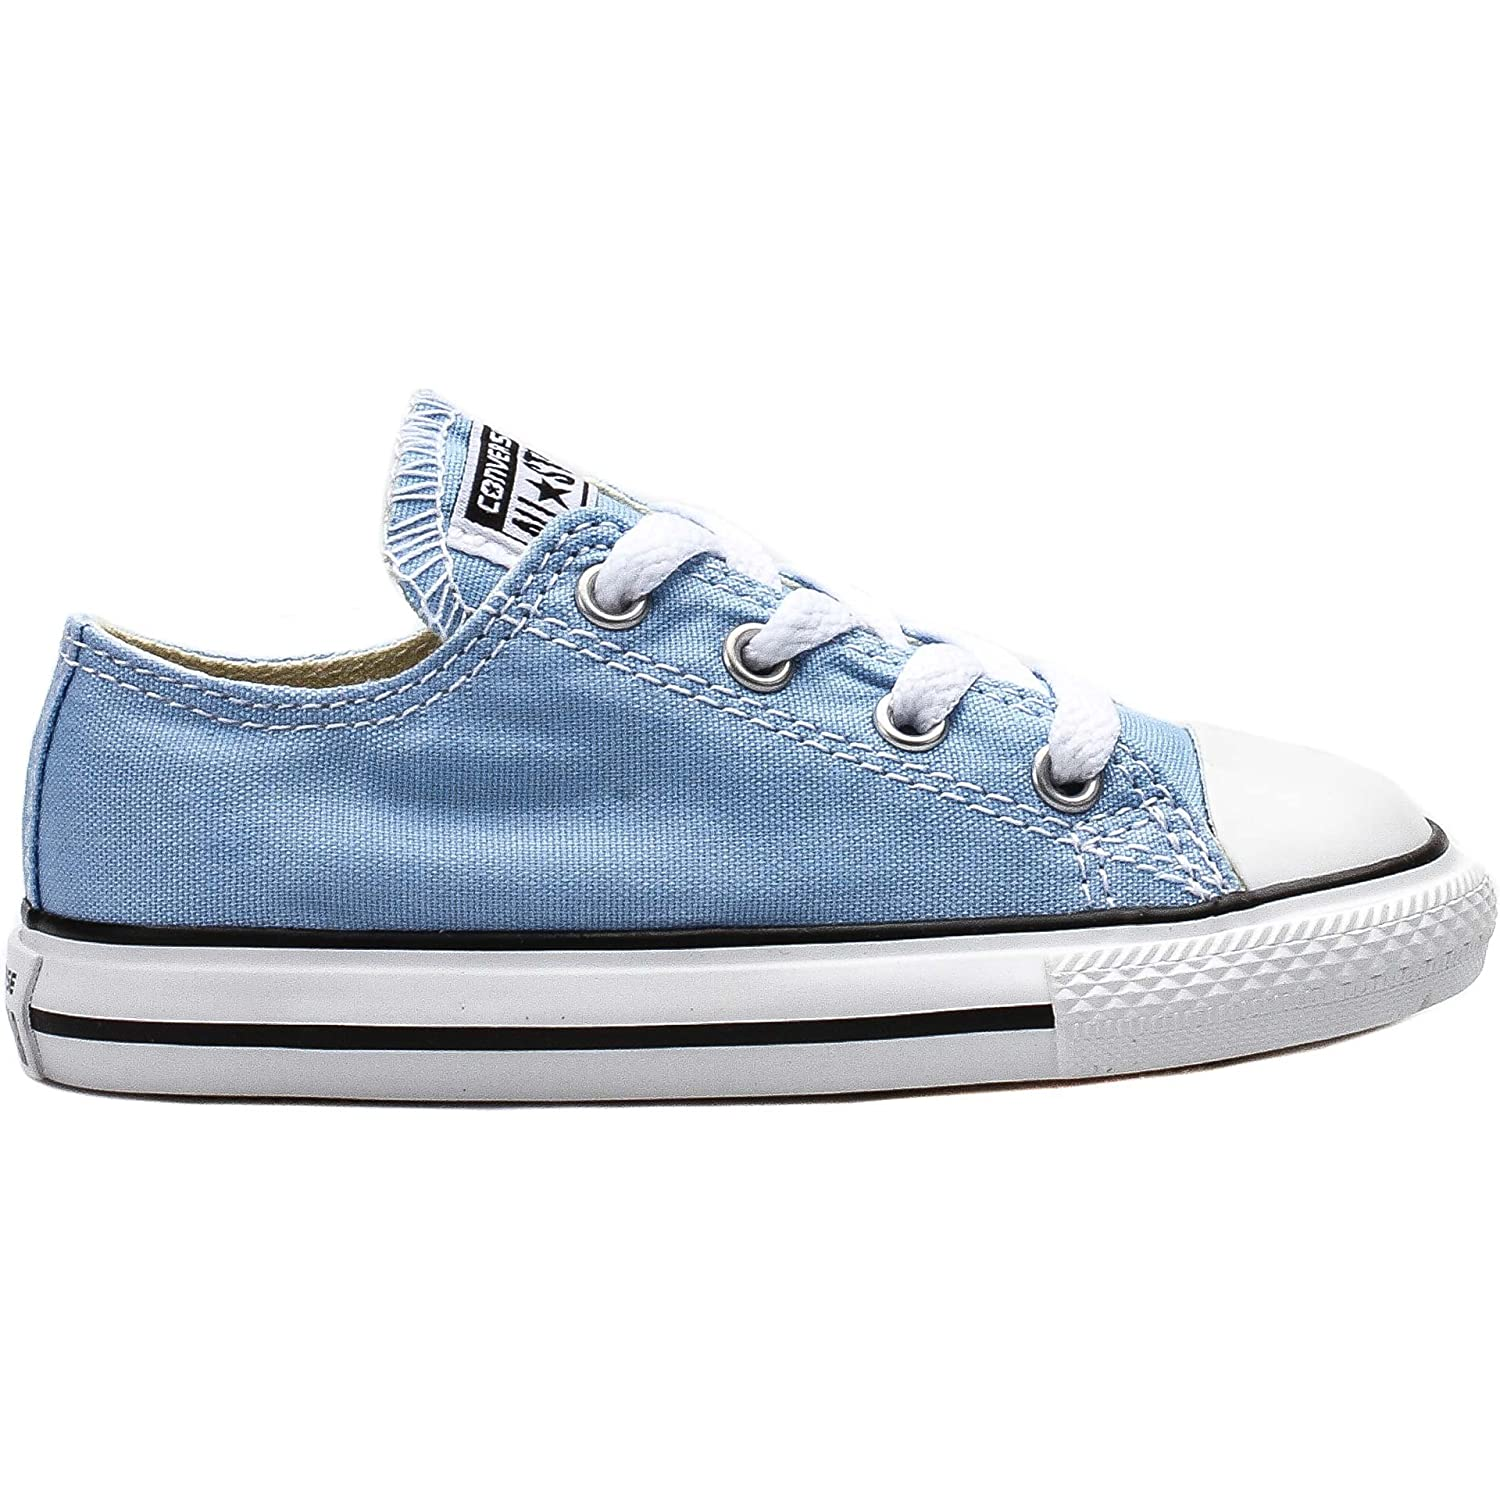 4accd8453209e1 Amazon.com  Converse Kids  Chuck Taylor All Star Ox (Infant Toddler)  Shoes